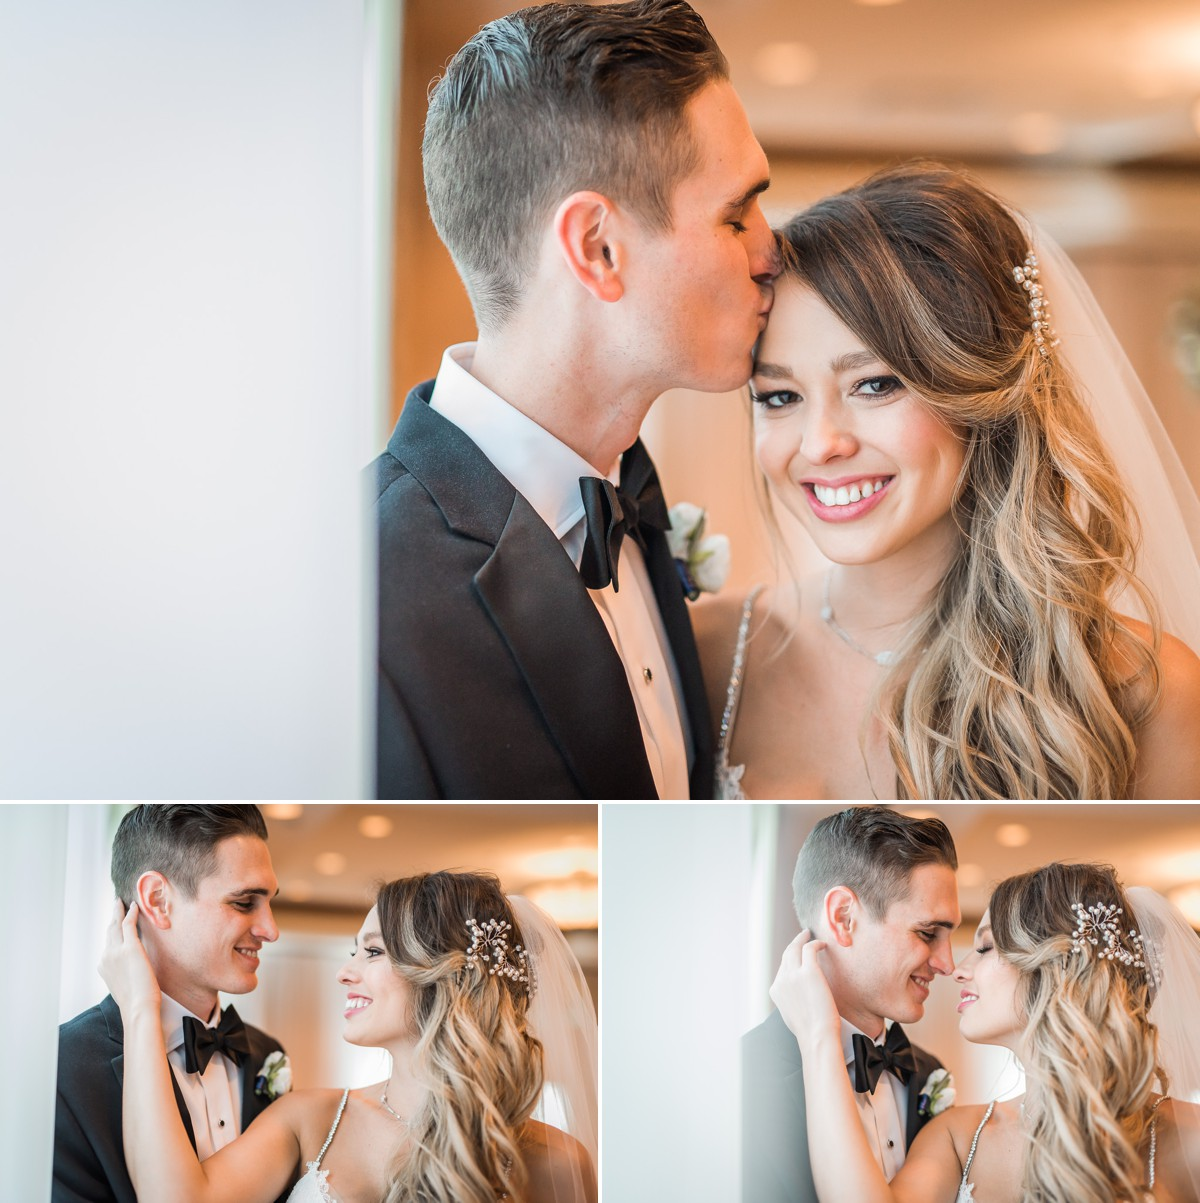 Manor House Wedding at The Houstonian Hotel Bride and Groom Portraits Indoor